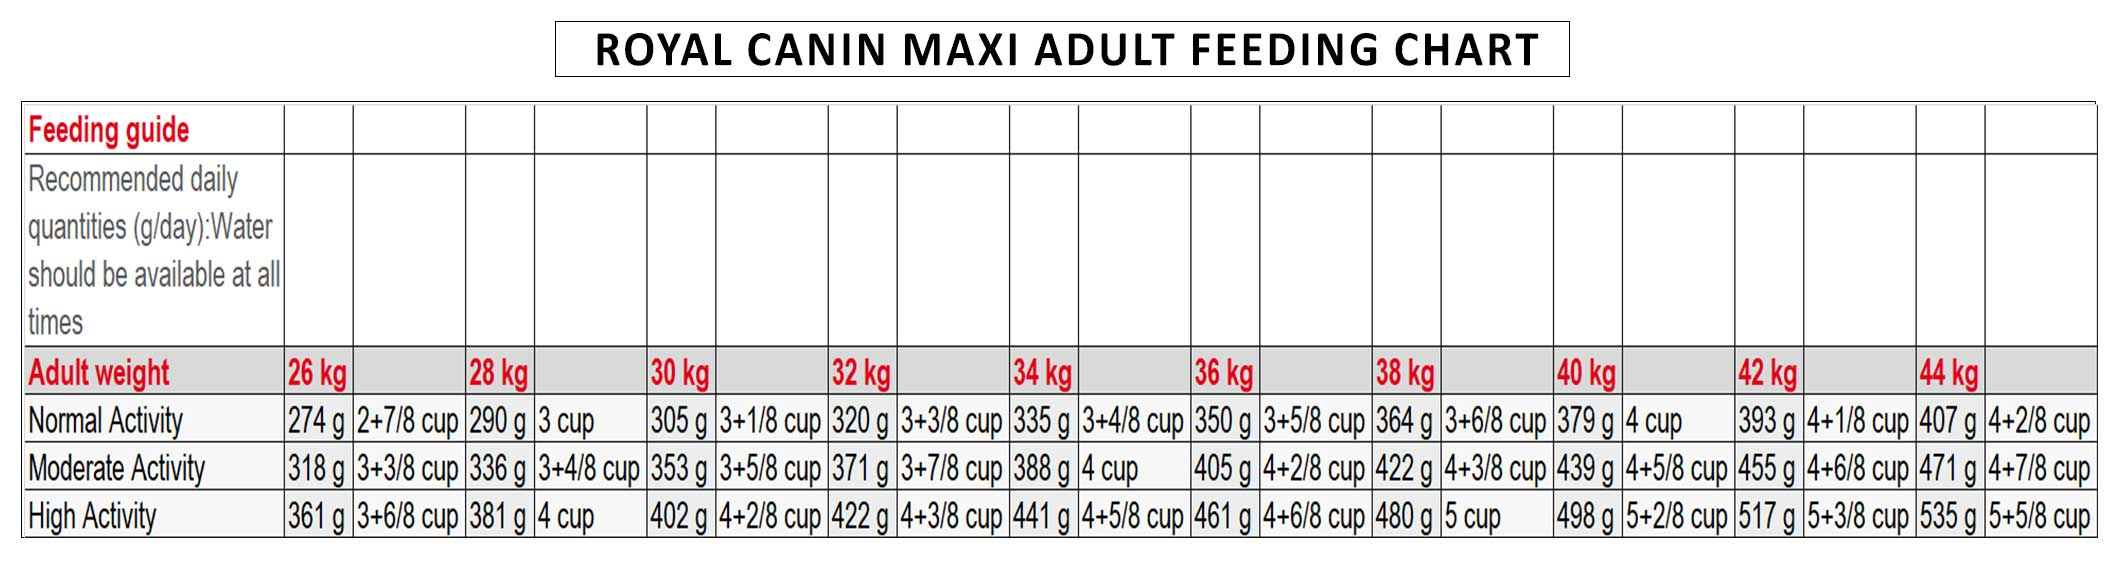 Royal-canin-Maxi-Adult-feeding-chart